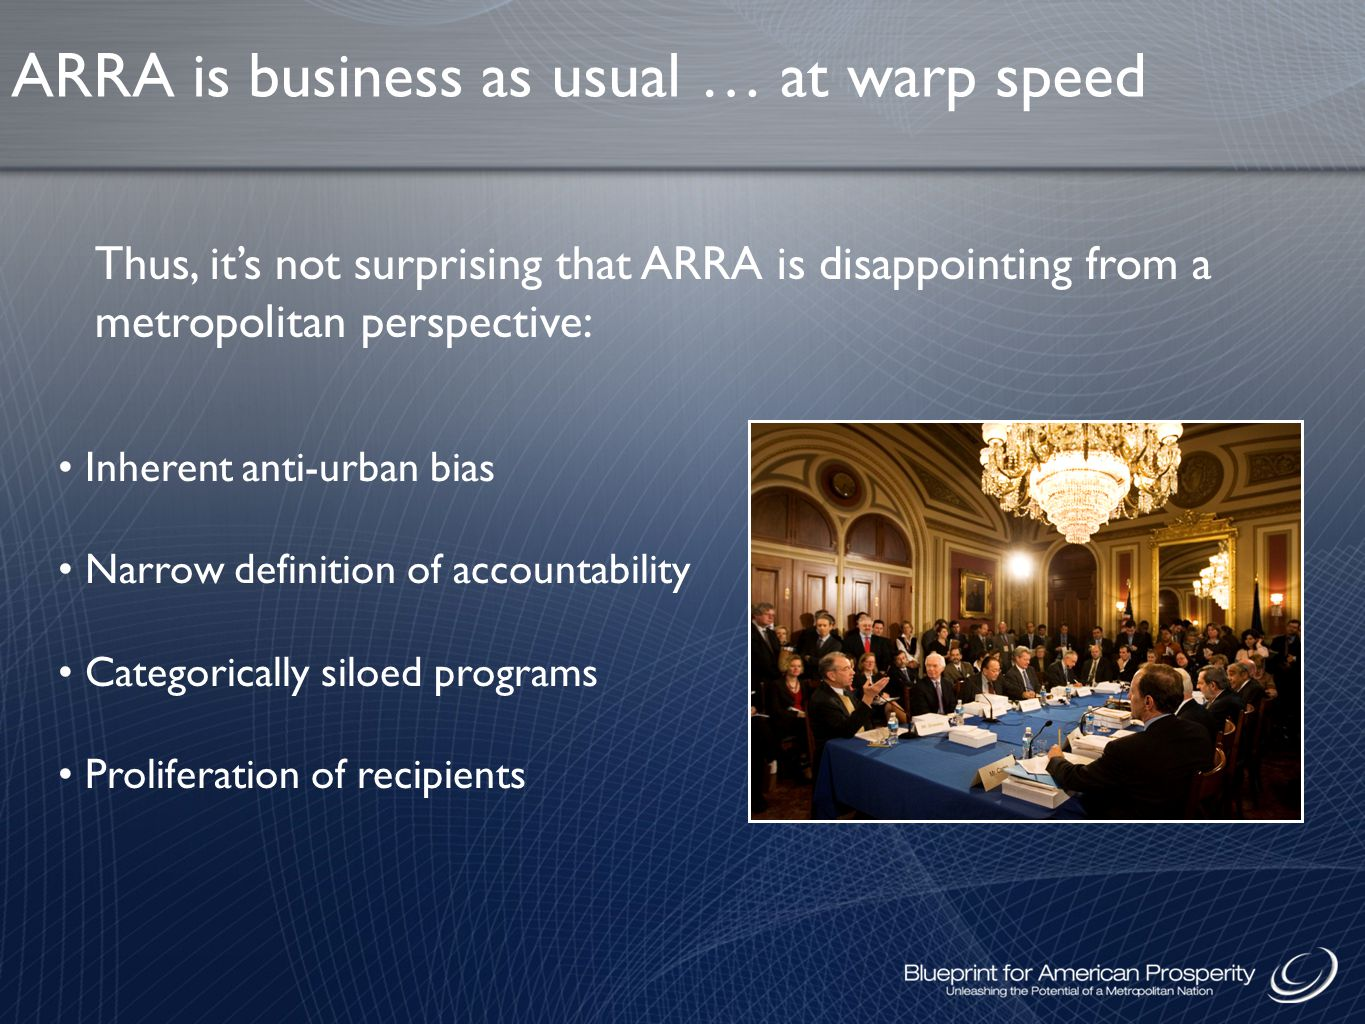 Inherent anti-urban bias Narrow definition of accountability Categorically siloed programs Proliferation of recipients Thus, it's not surprising that ARRA is disappointing from a metropolitan perspective: ARRA is business as usual … at warp speed